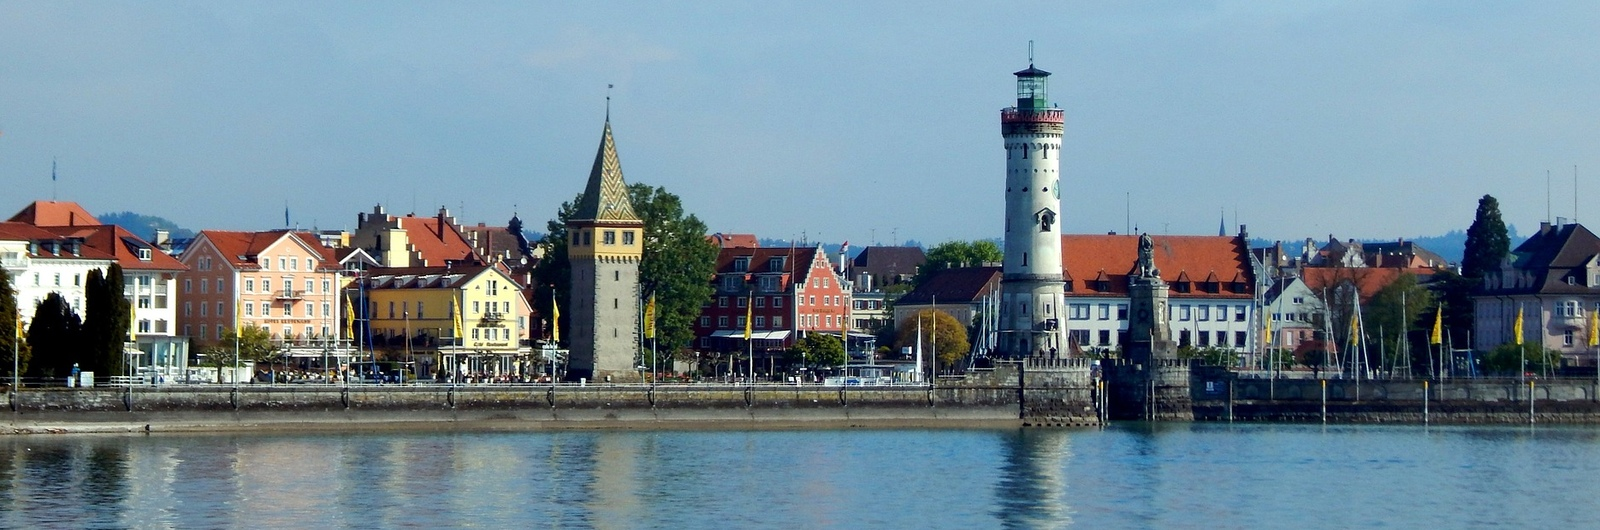 lindau city header